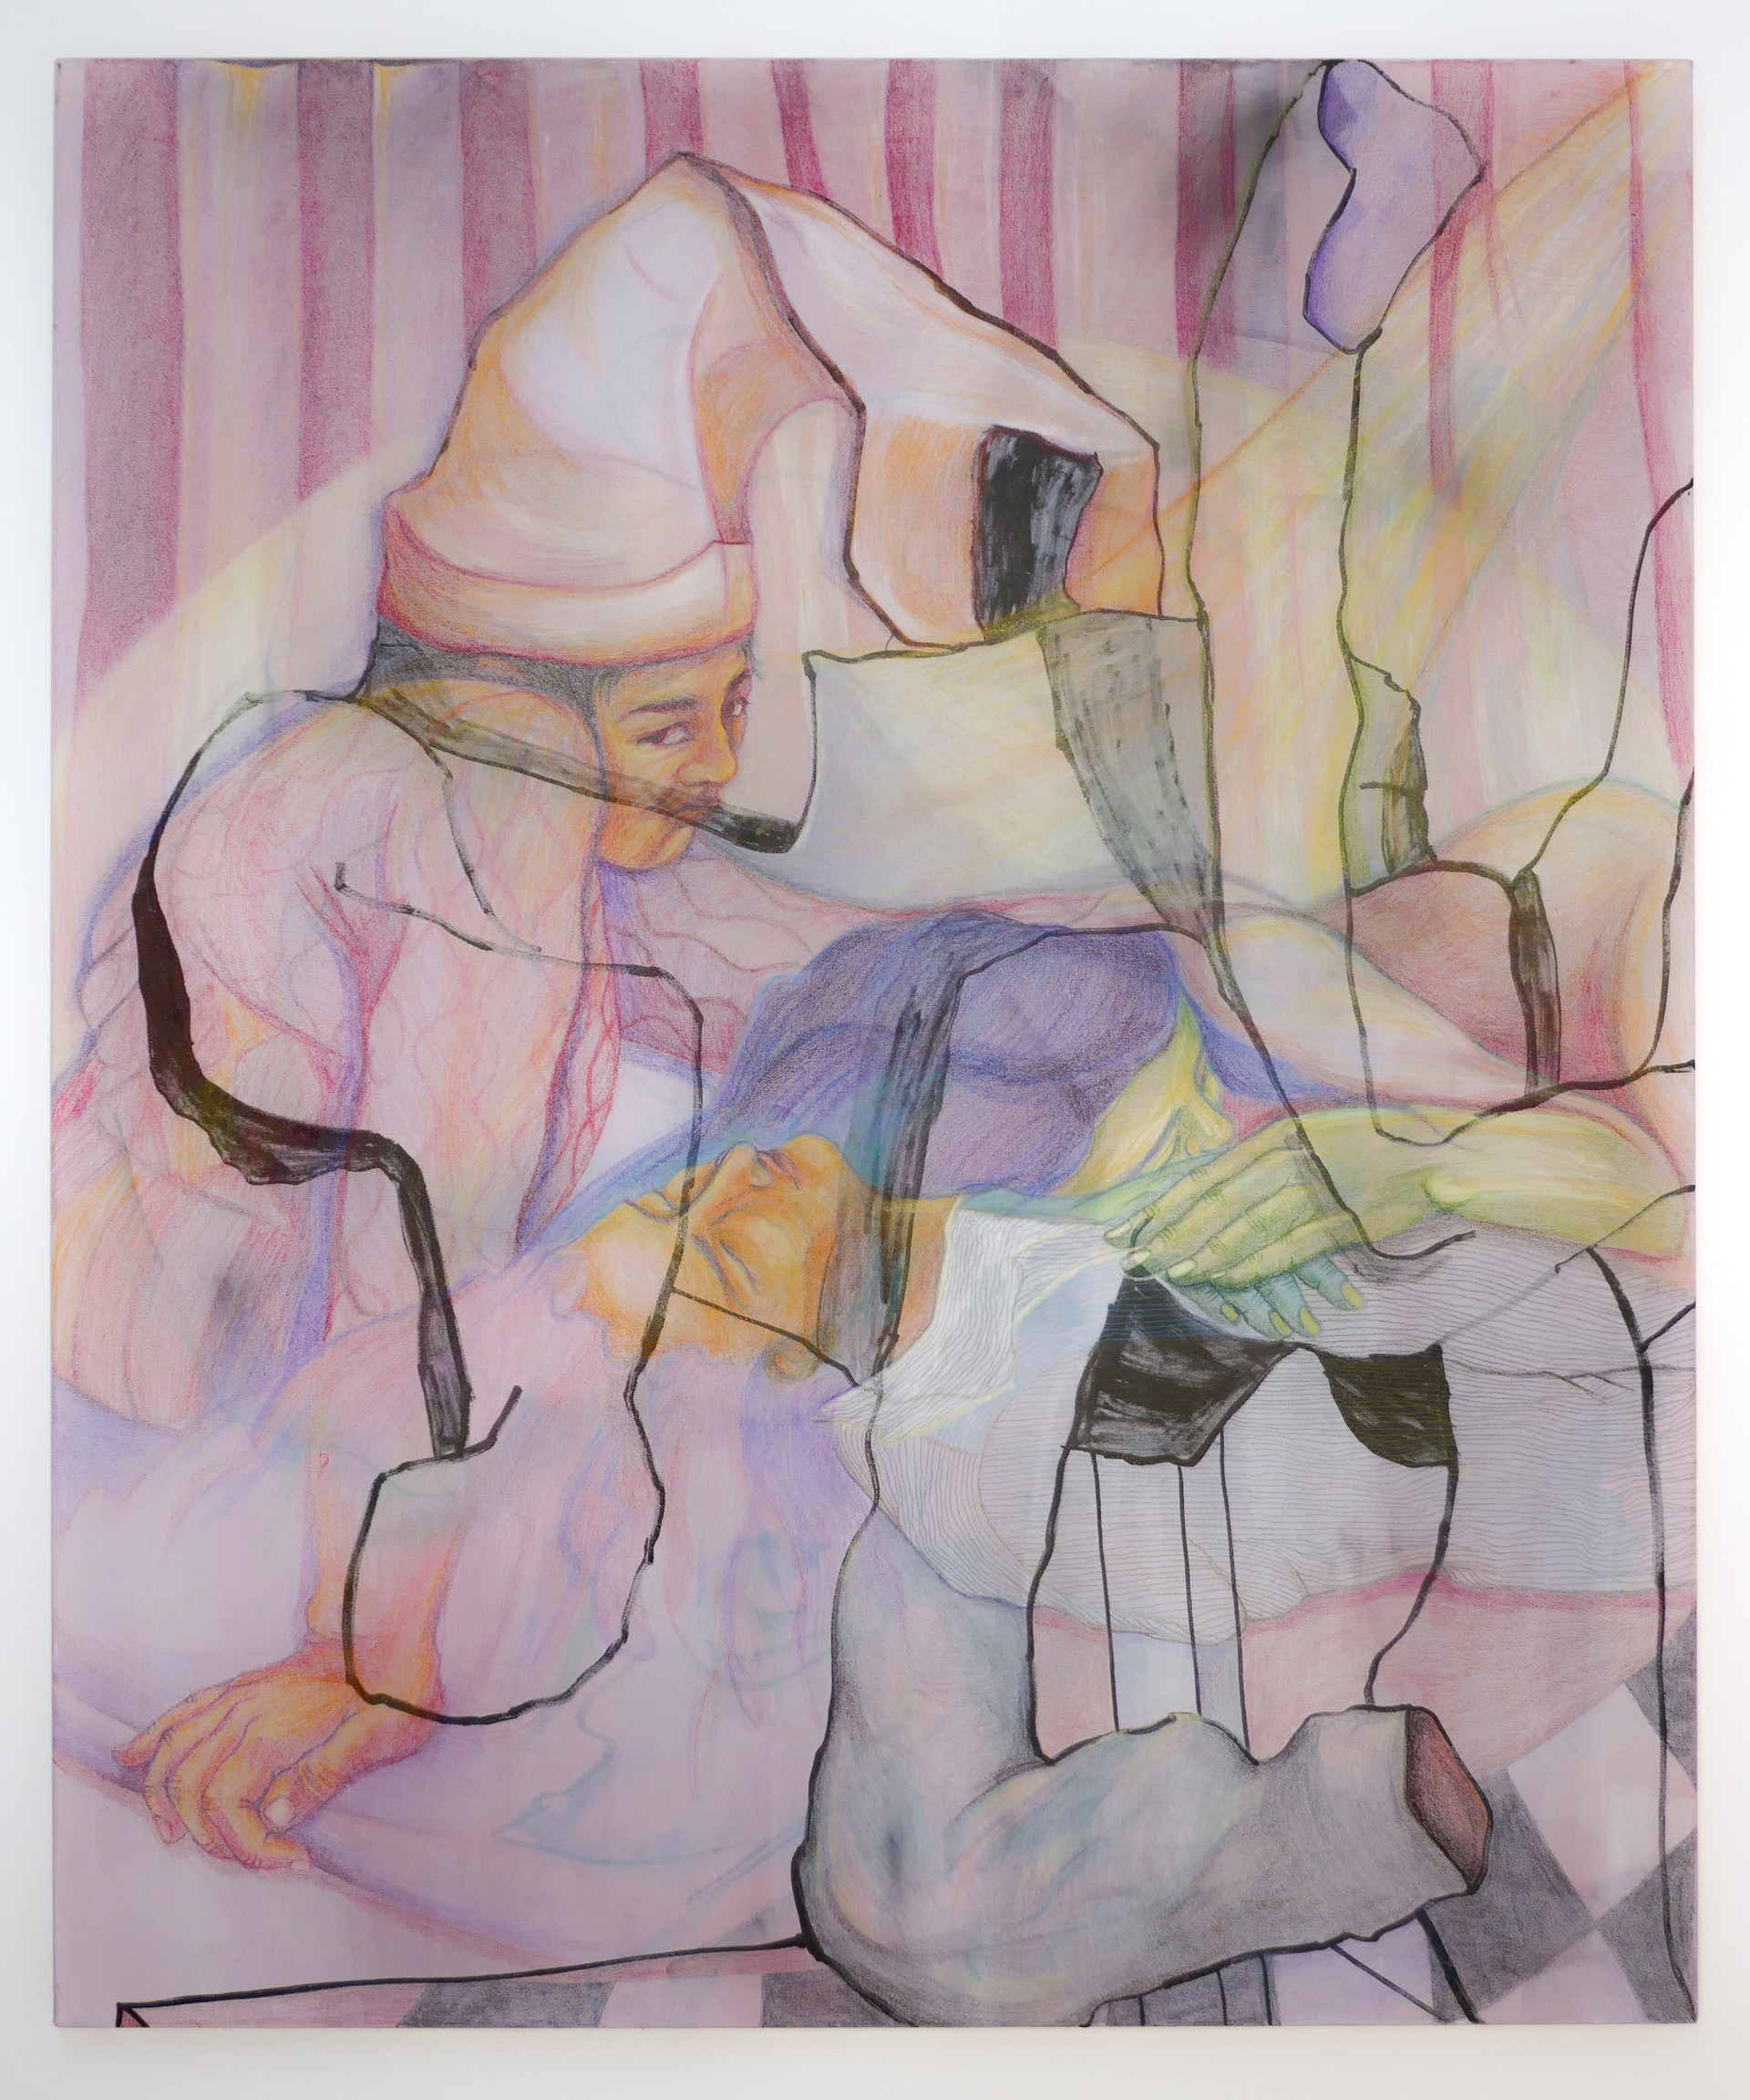 Eleanor Wang, In this version, they're just sleeping, Acrylic and coloured pencil on canvas, 102 x 122 x 2.5cm